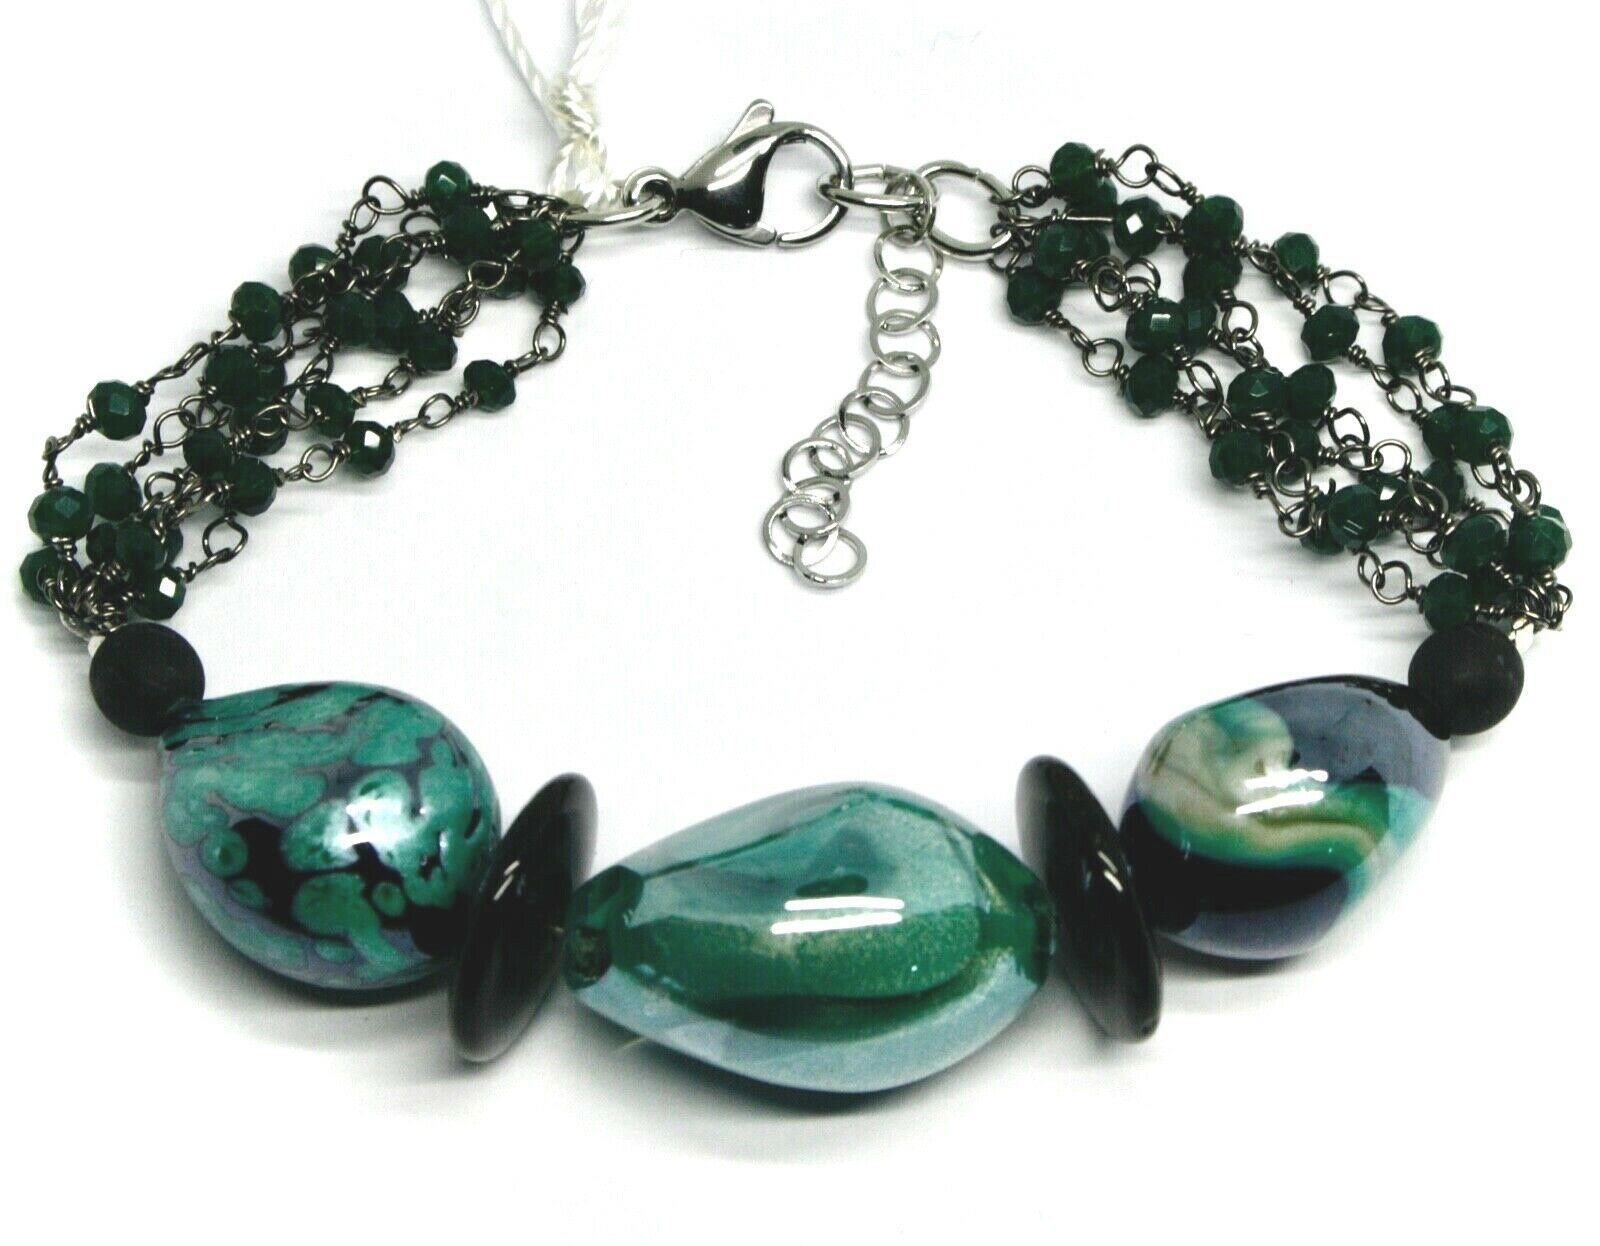 BRACELET BLACK, GREEN SPOTTED DROP OVAL DISC MURANO GLASS, MADE IN ITALY